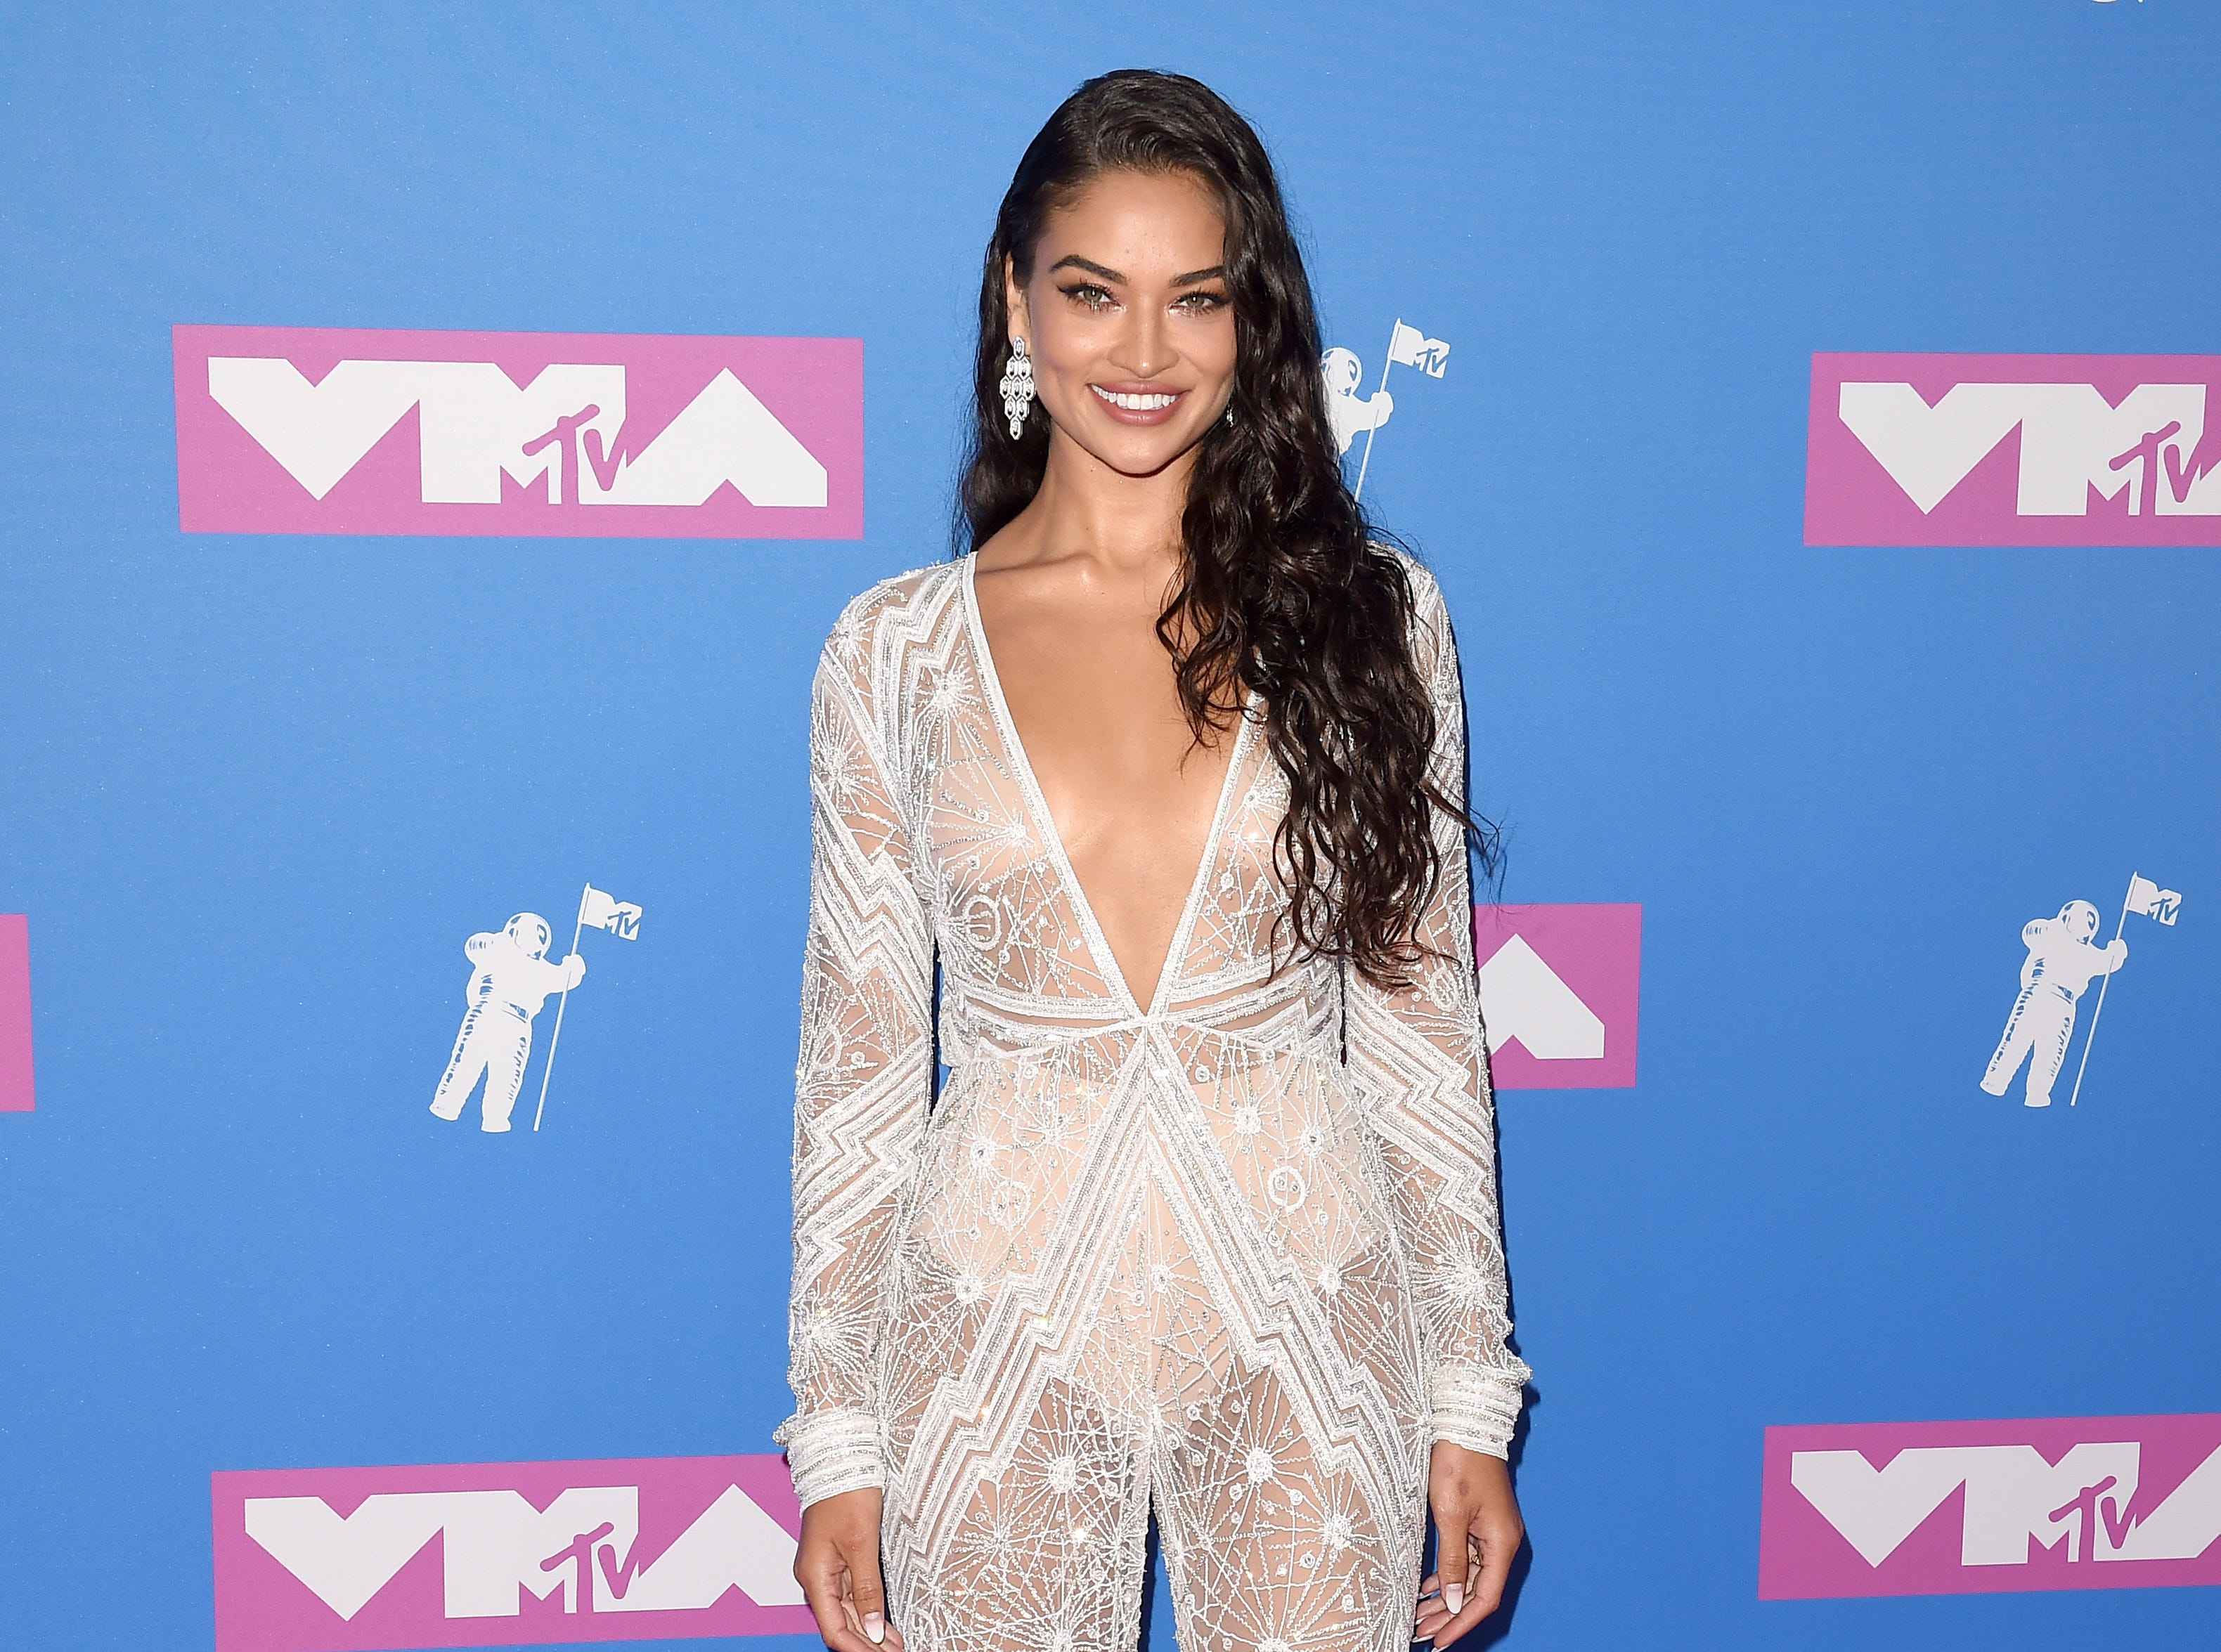 Model Shanina Shaik also went sheer at the 2018 MTV Video Music Awards.